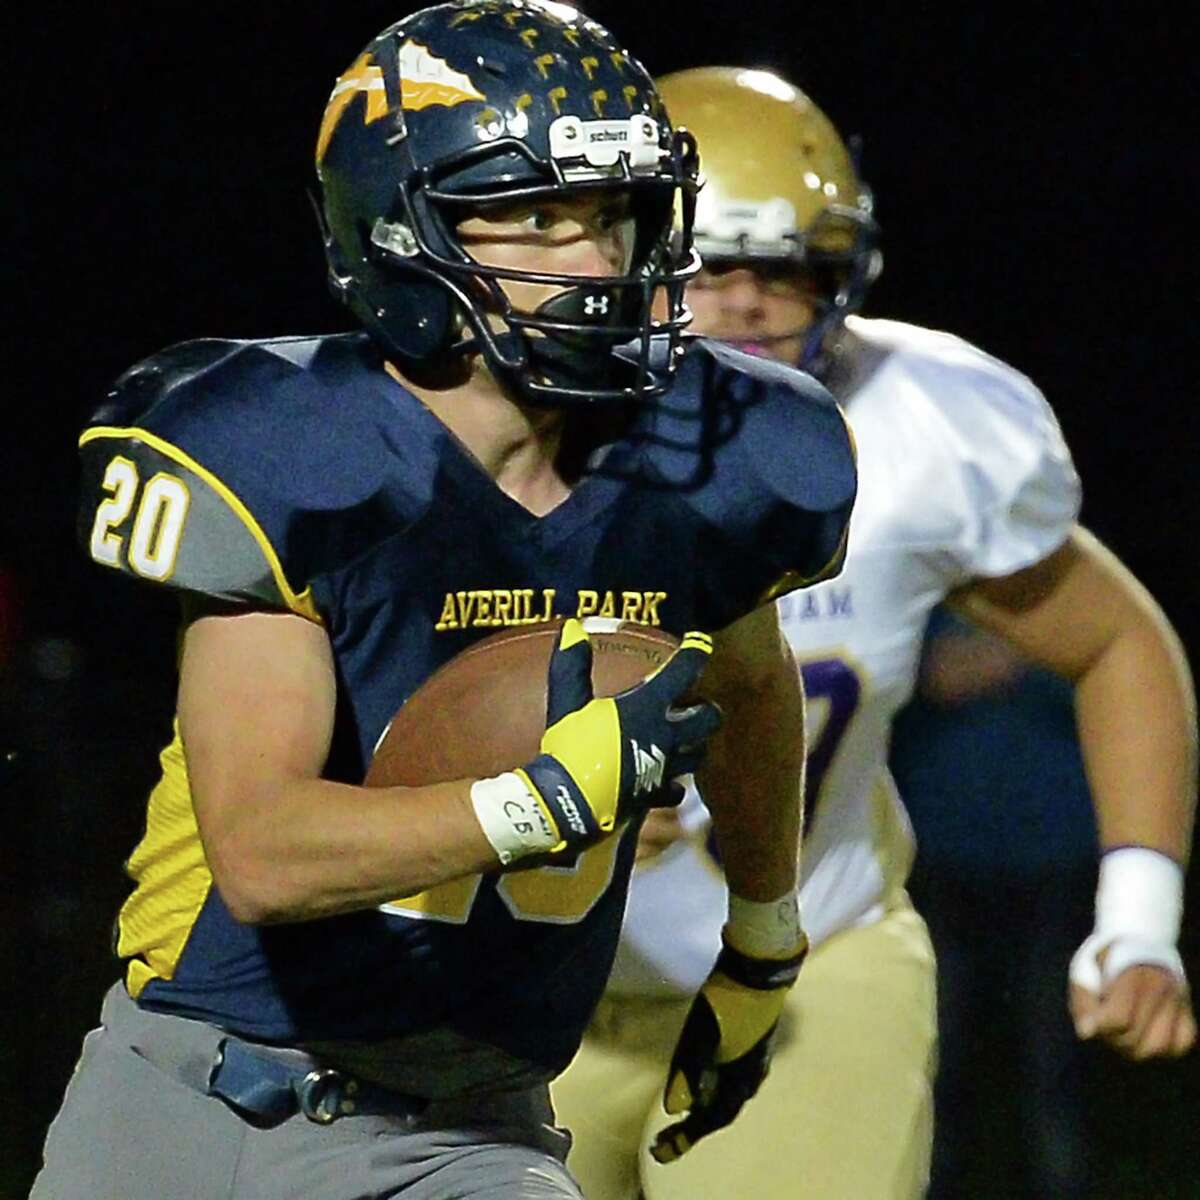 Averill Park's #20 Dom Law runs the ball during Friday night's game against Amsterdam Sept. 29, 2017 in Averill Park, NY. (John Carl D'Annibale / Times Union)